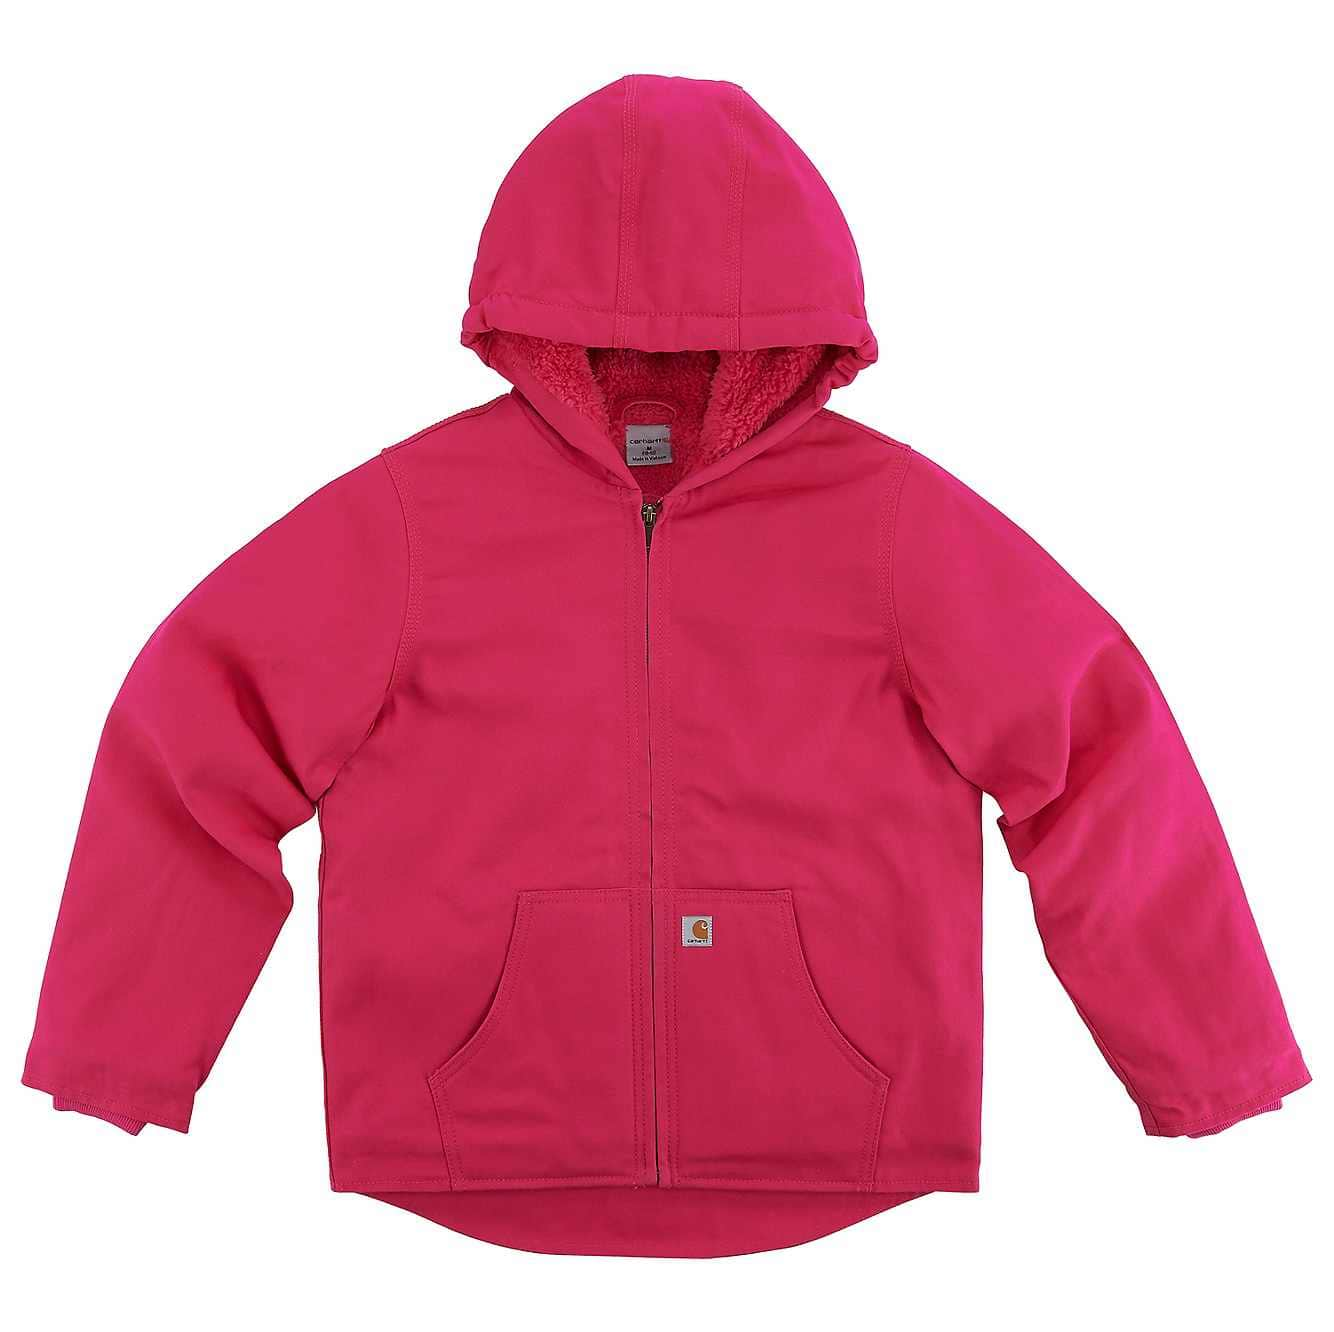 Picture of Redwood Jacket Sherpa Lined in Pink Peacock